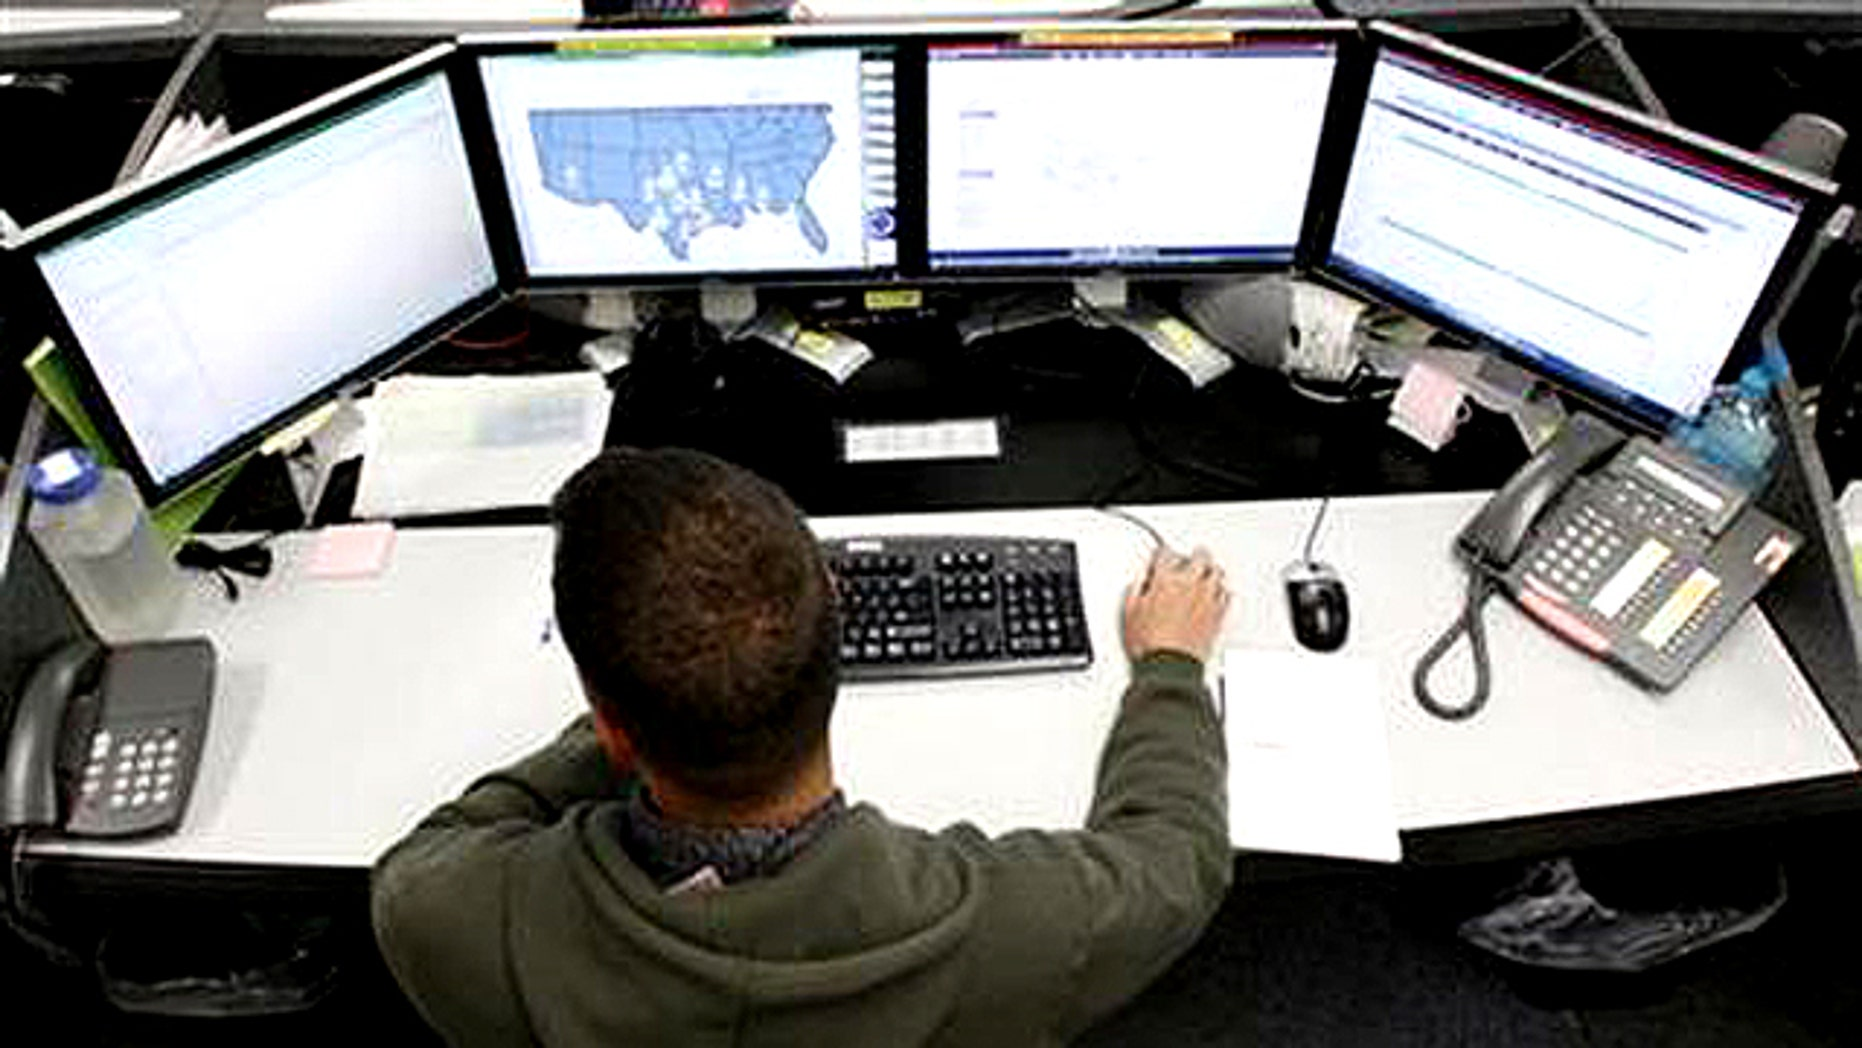 July 20, 2010: A network defender works at the Air Force Space Command Network Operations & Security Center at Peterson Air Force Base in Colorado Springs, Colorado.